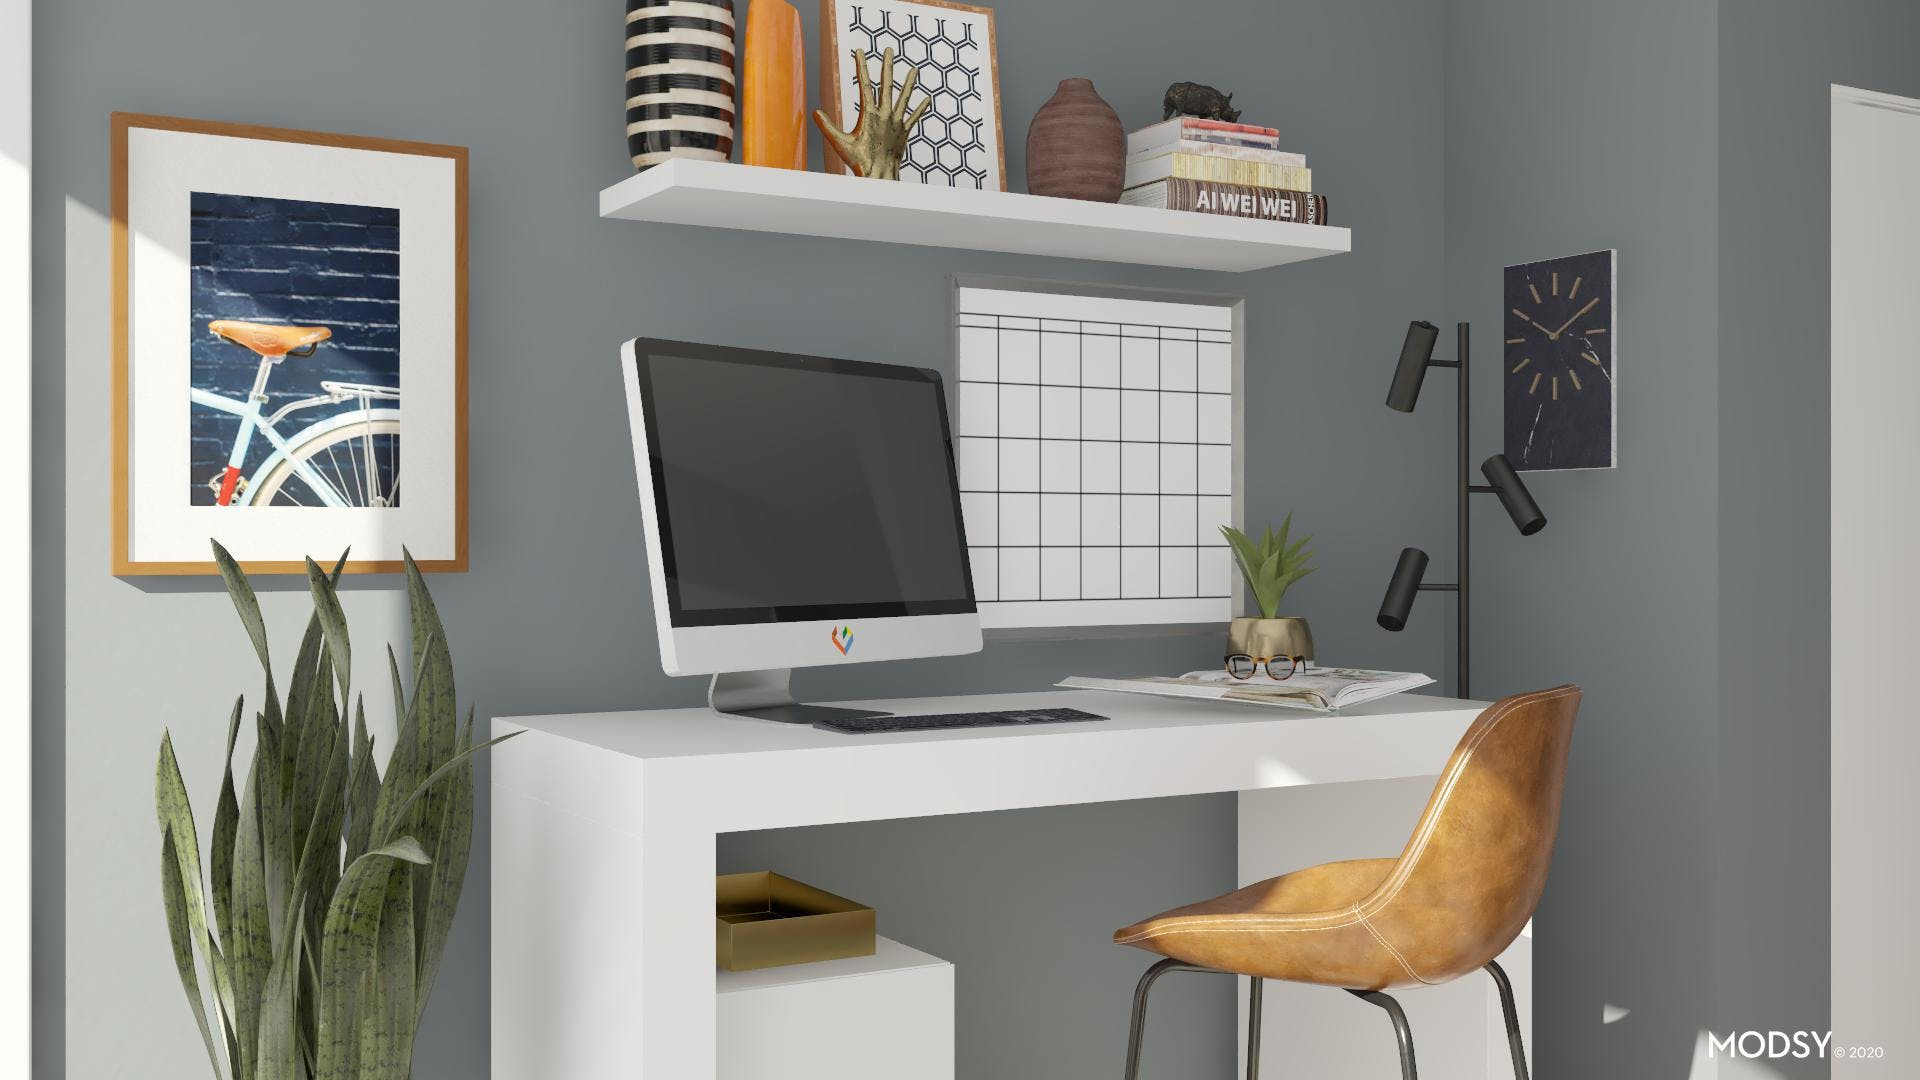 Apartment Office Nook